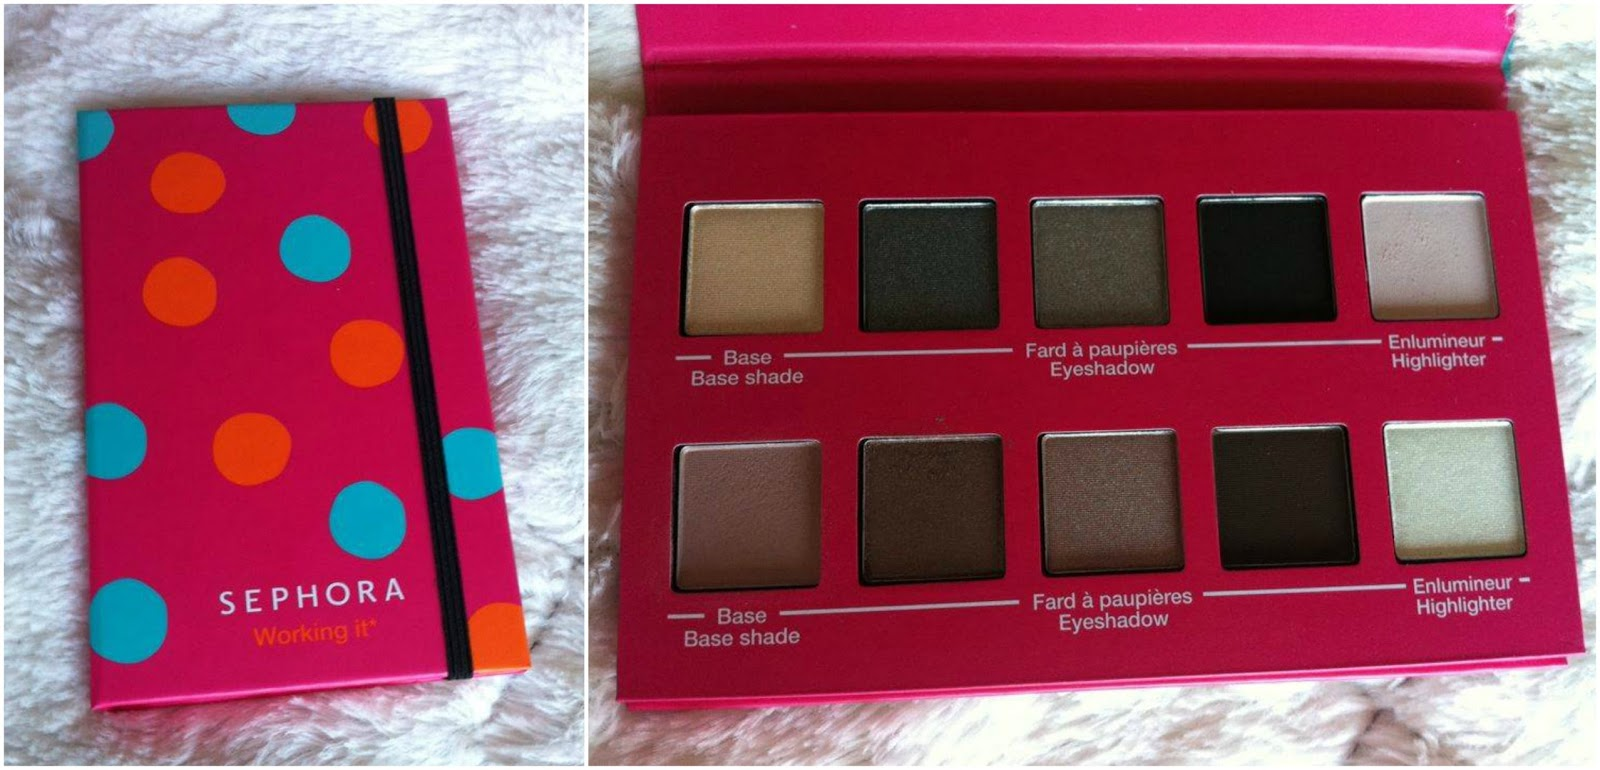 My Beauty Notebooks: Eye, Face & Lip Palettes by Sephora Collection #21